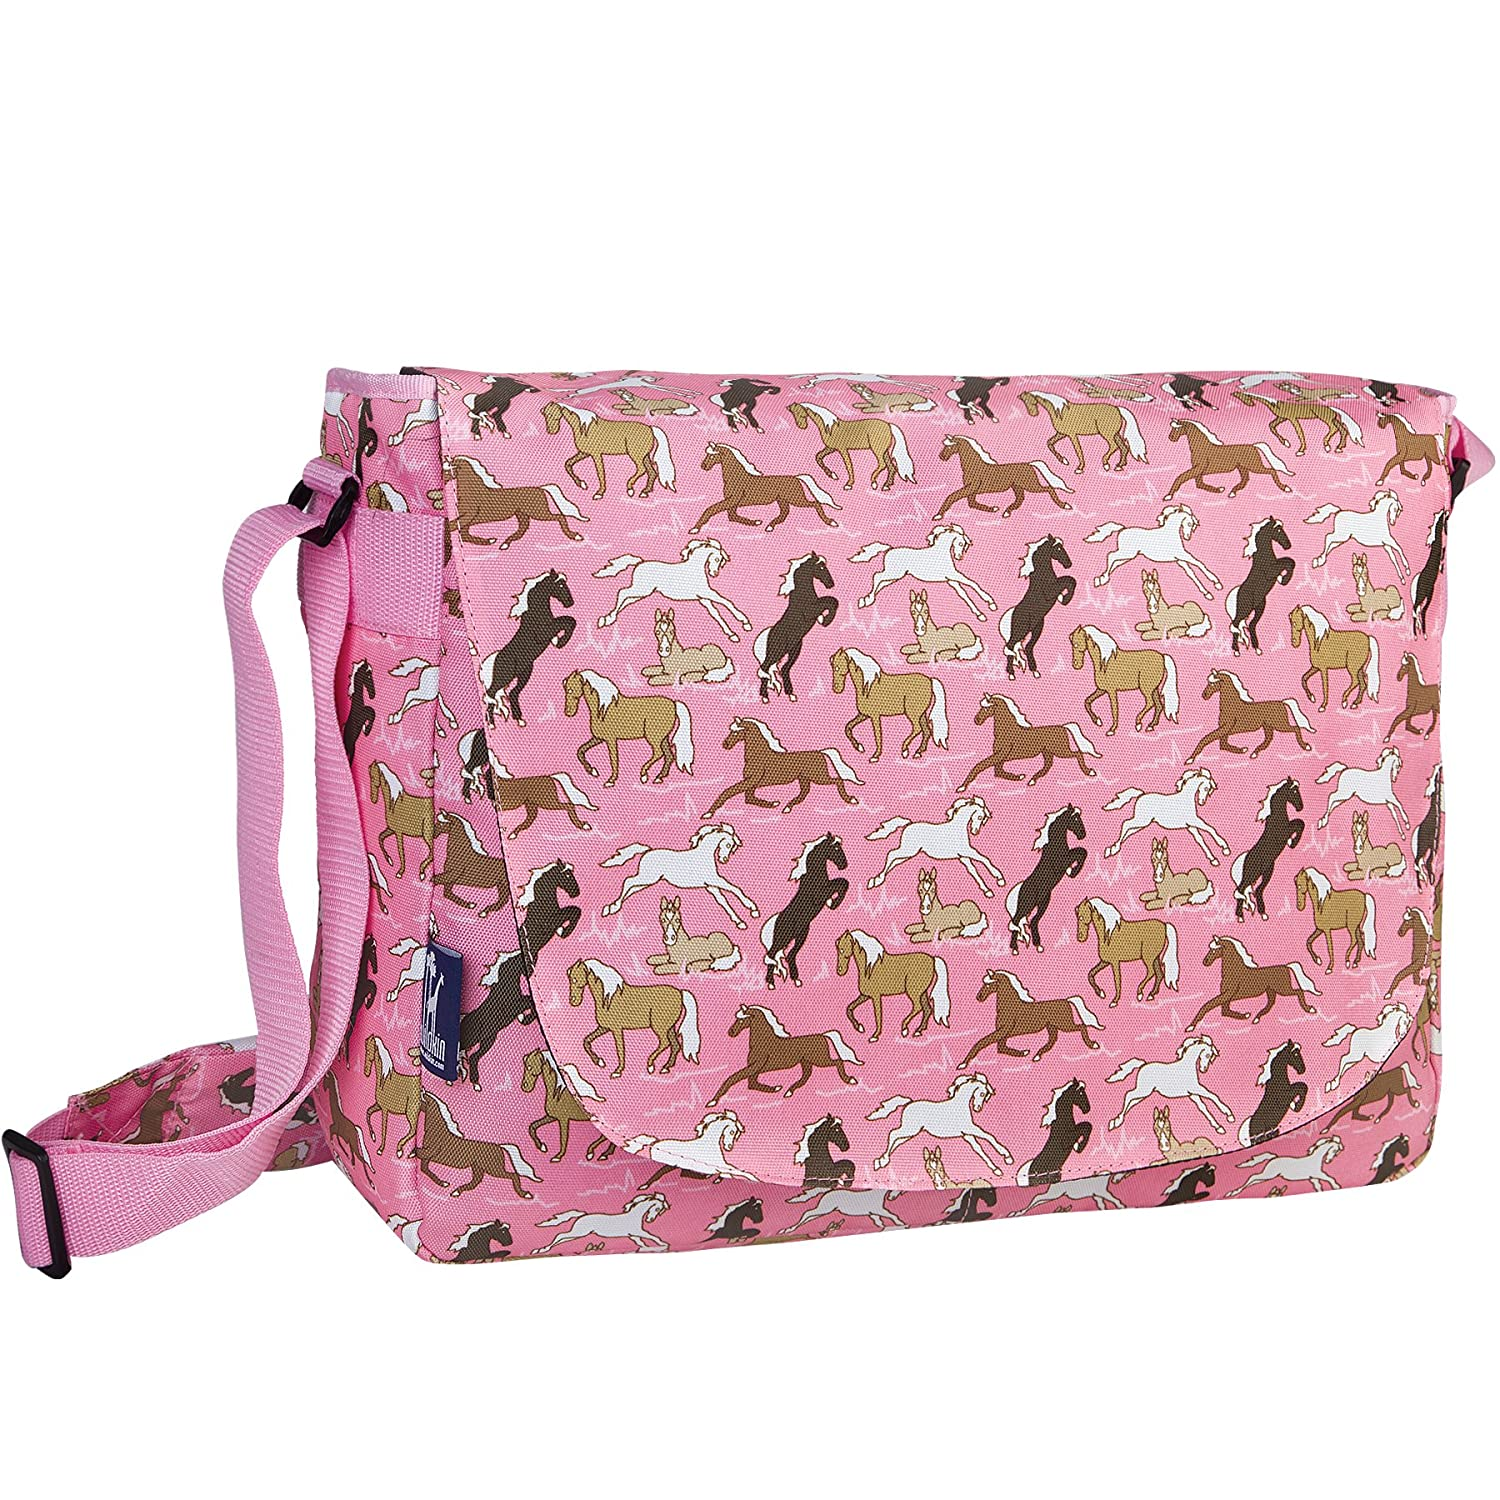 Wildkin Horses in Pink Laptop Messenger Bag by Wildkin  Horses in Pink B004N8D0ZM